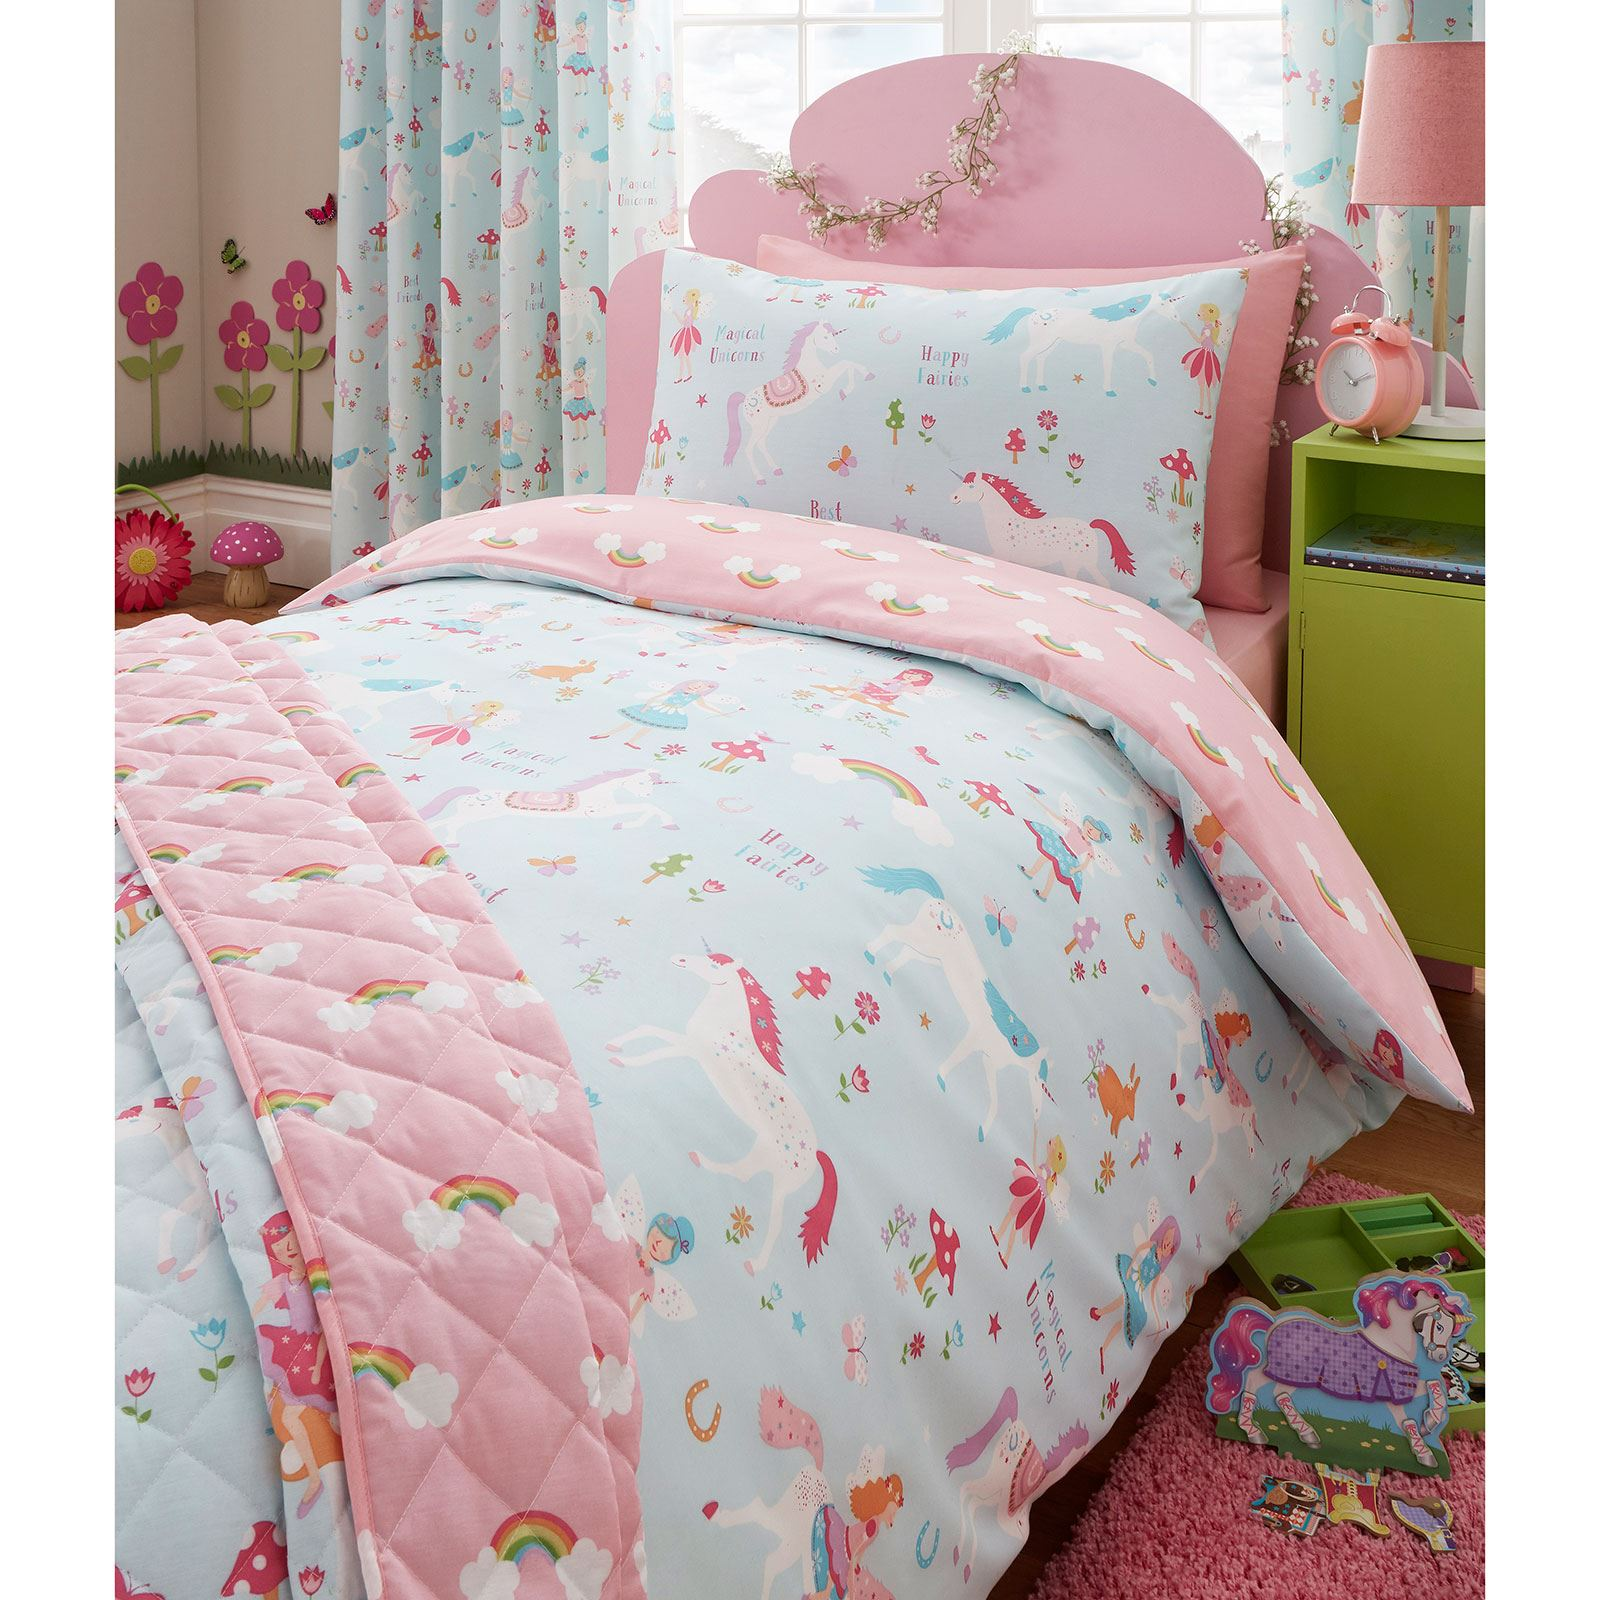 Winnie the pooh toddler bedding - Magical Unicorn Single Duvet Cover Set Unicorn Fairy Bedding Quilt